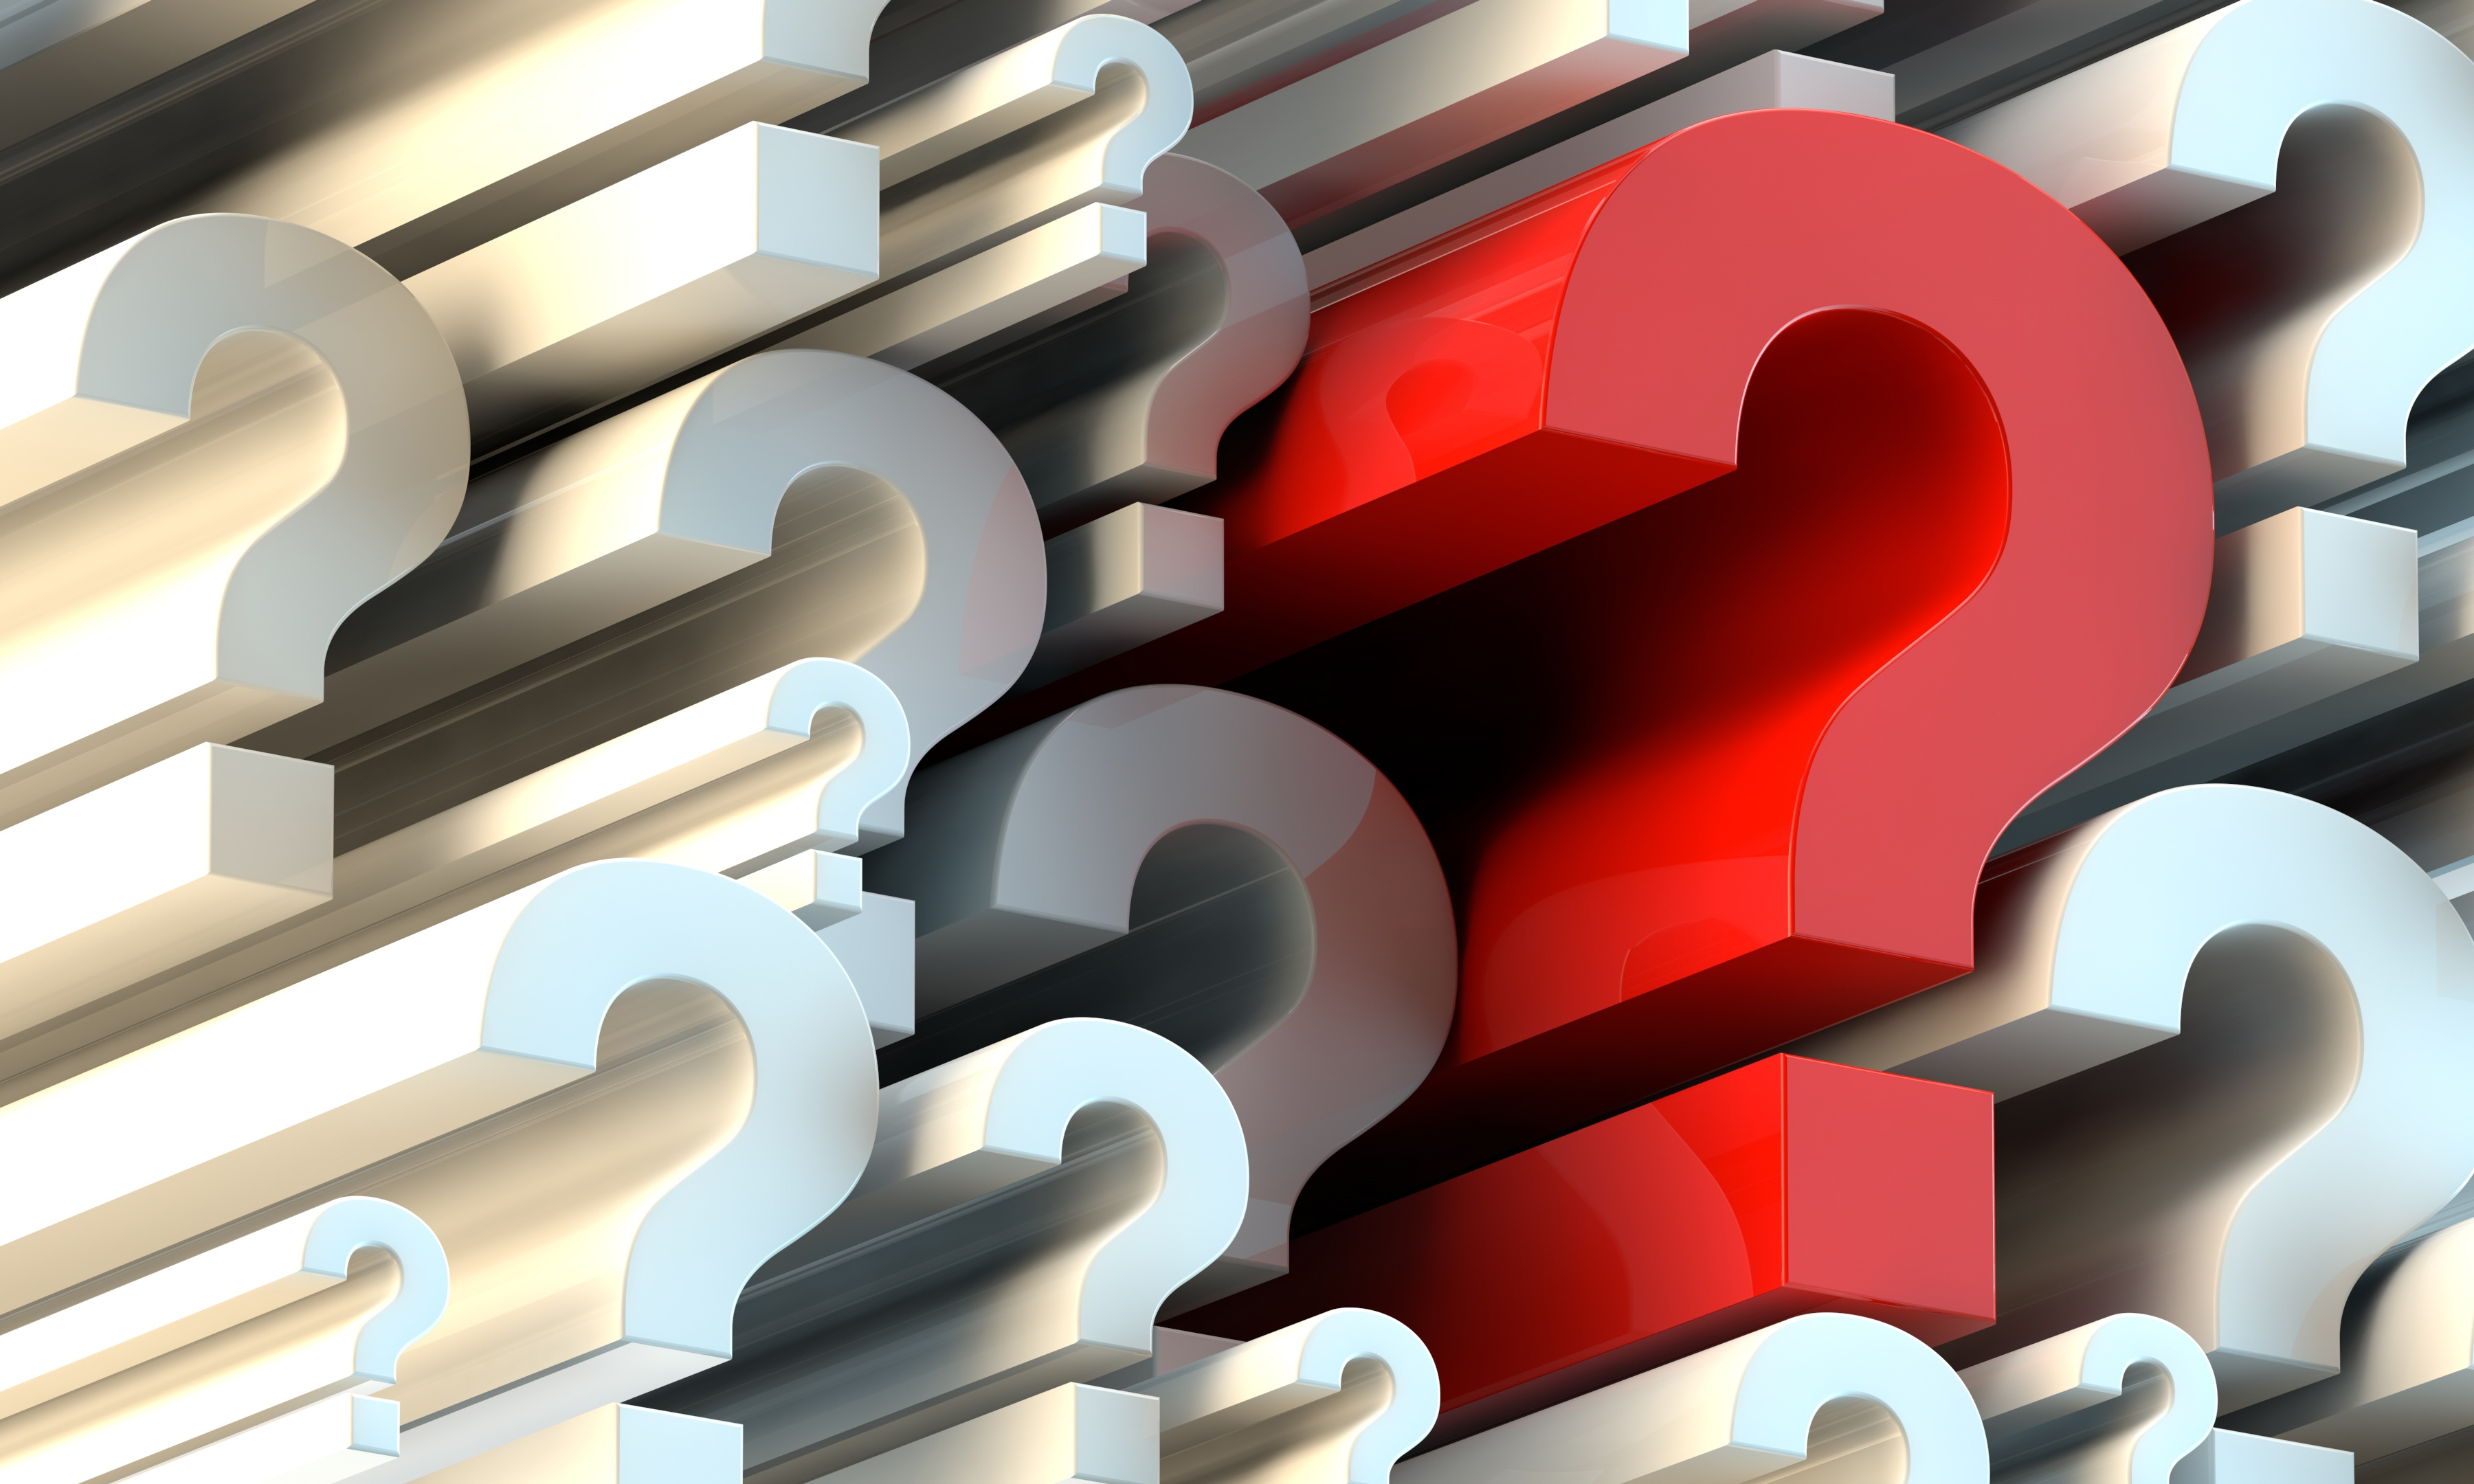 7_questions_to_ask_before_buying_emergency_portable_suction